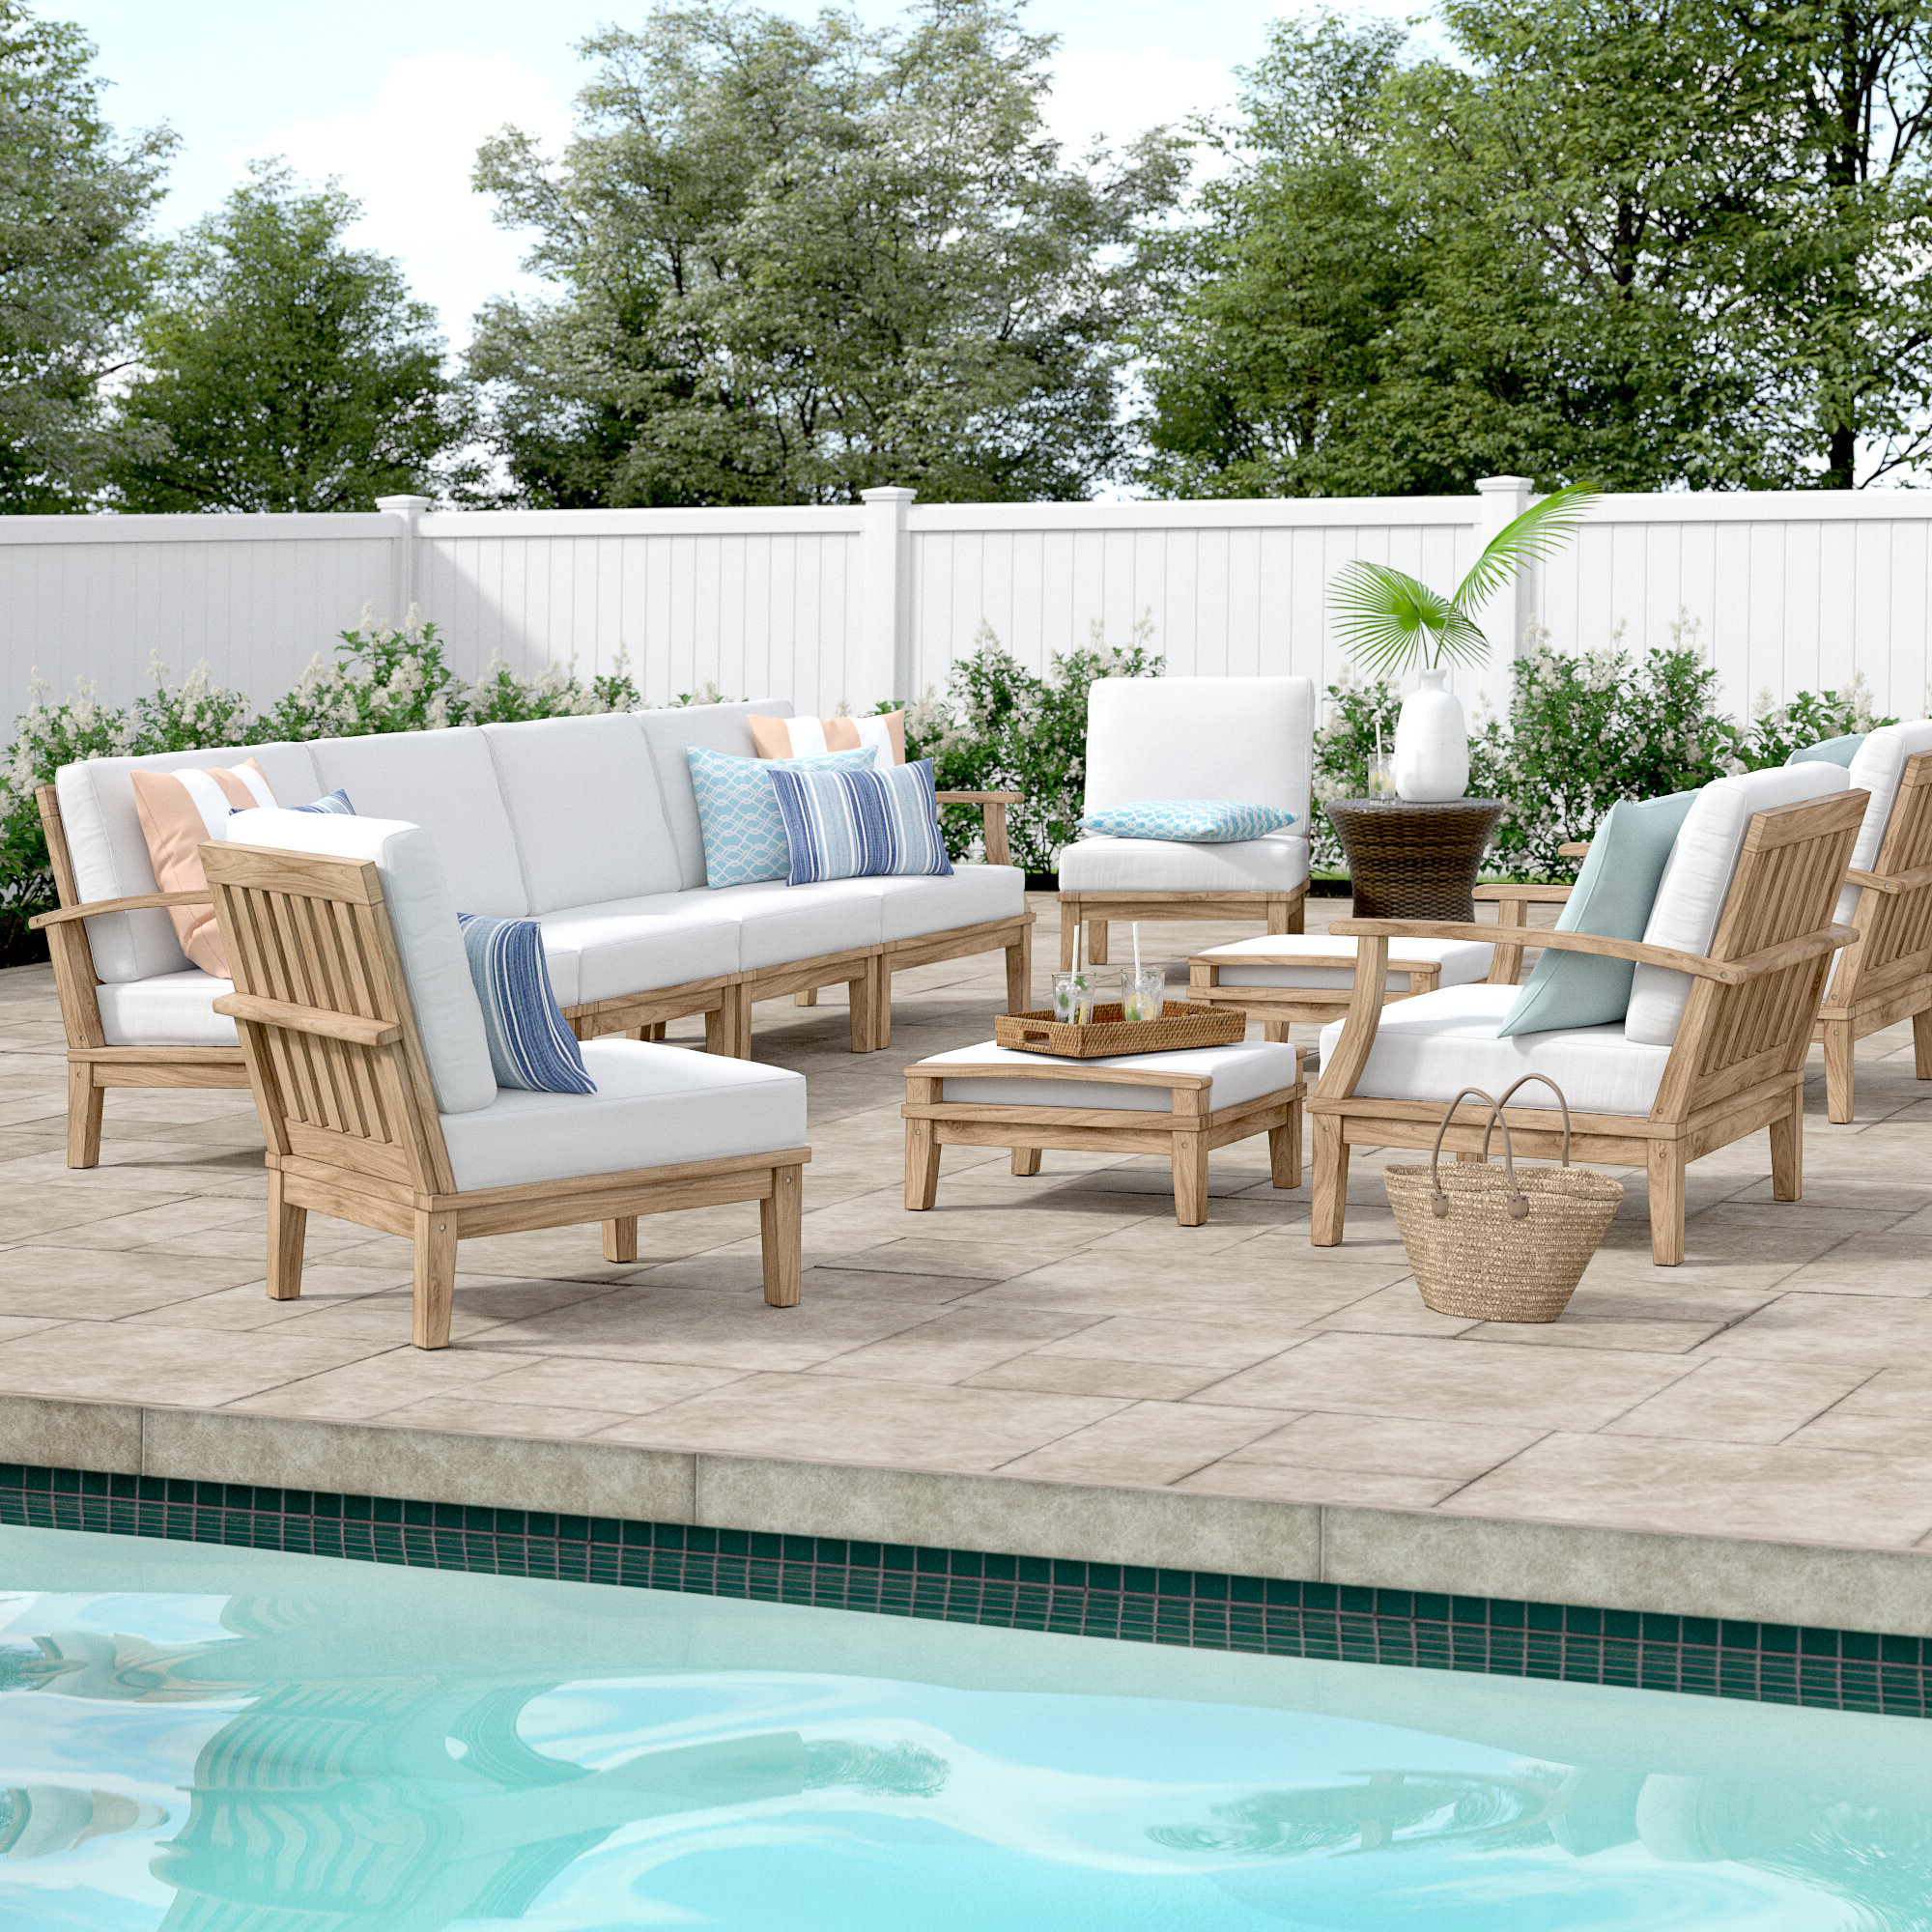 Elaina Cantilever Umbrellas For Well Liked Elaina 10 Piece Teak Sectional Seating Group With Cushions (View 6 of 20)